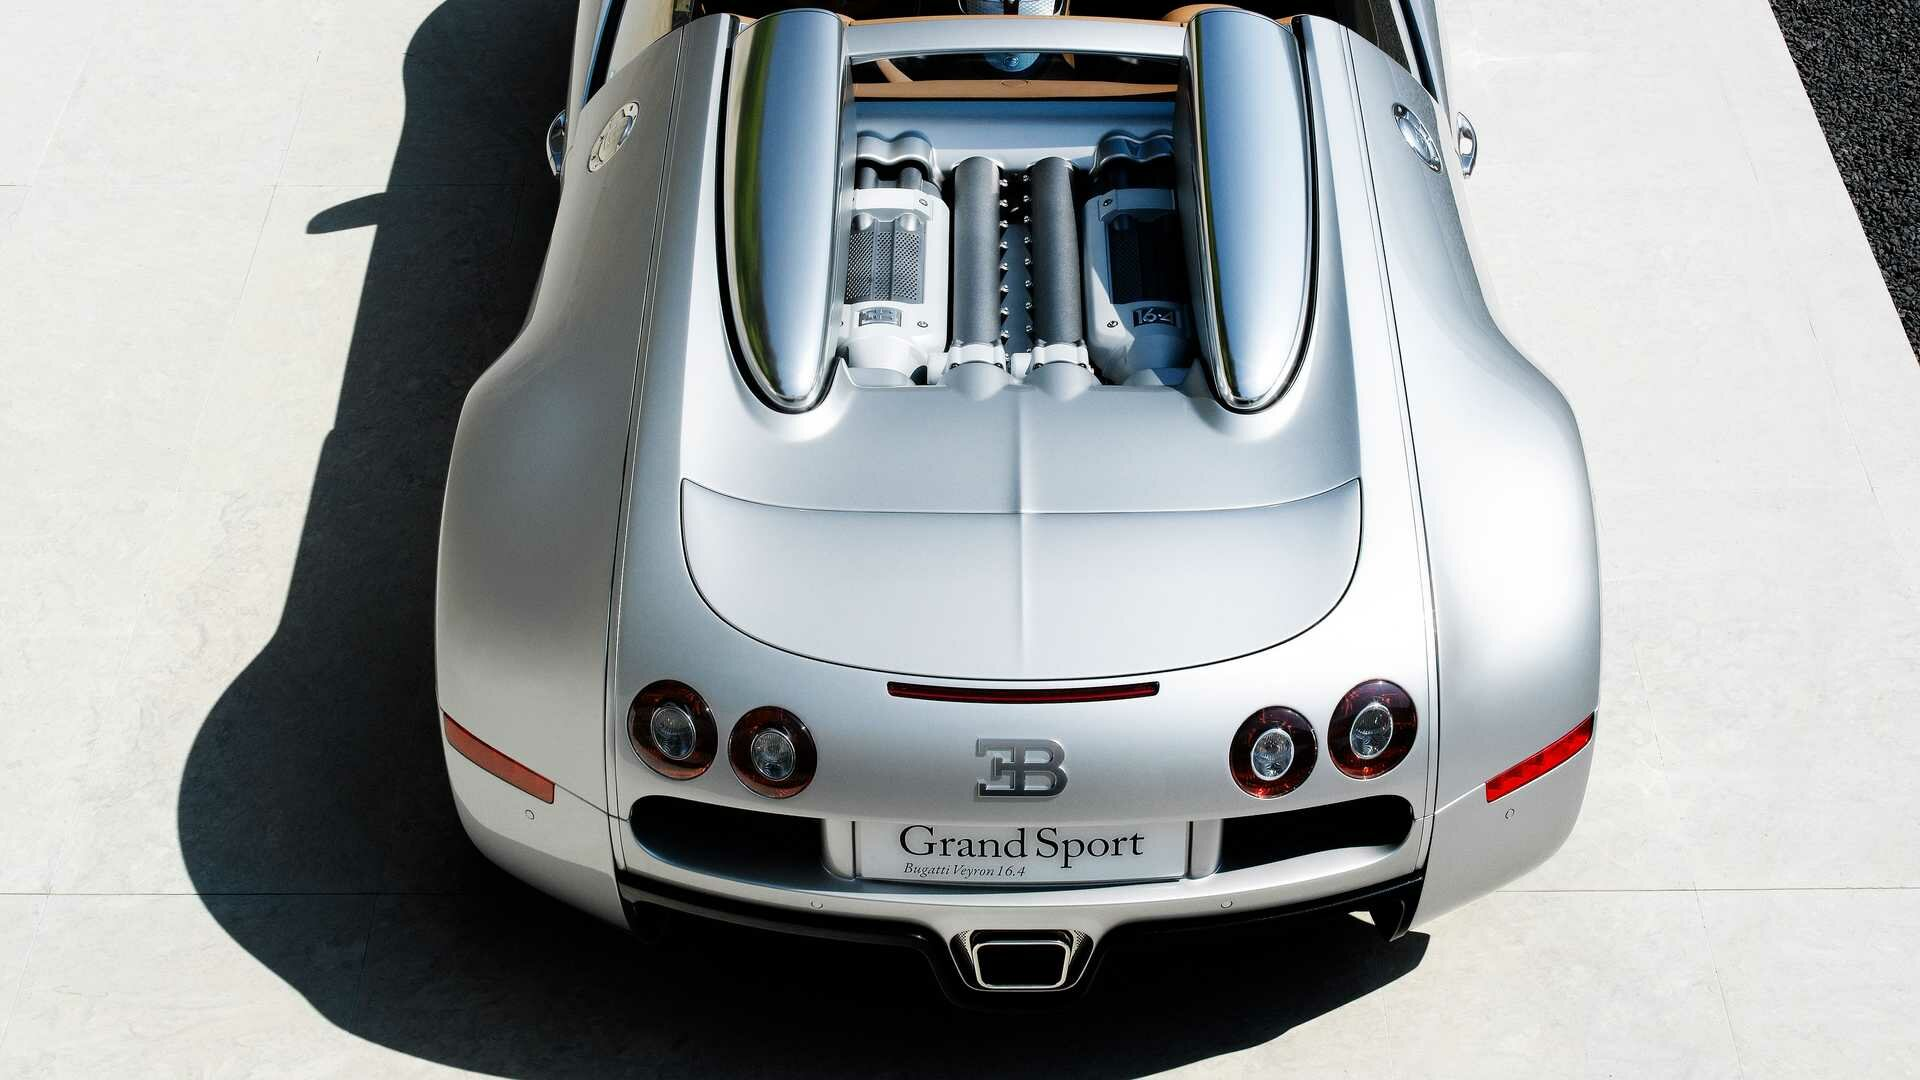 This Bugatti Veyron Grand Sport Concept was built 13 years ago and has now been restored by the company's La Maison Pur Sang division, which took four months.